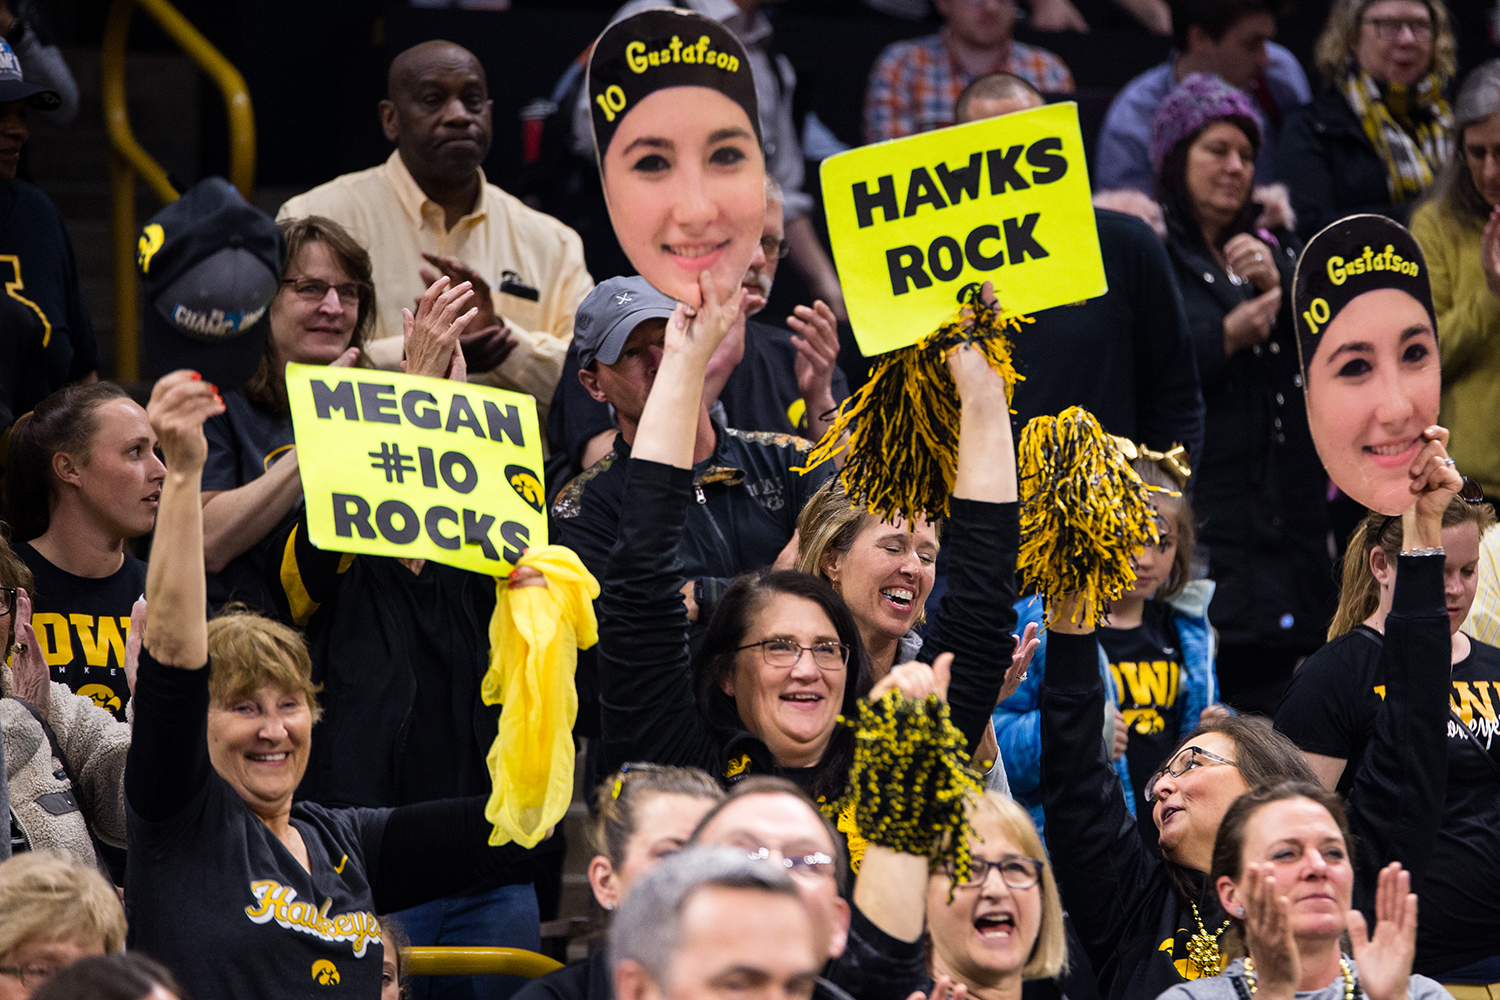 Iowa center Megan Gustafson (10) family cheers her on after the Iowa/Missouri NCAA Tournament second round women's basketball game in Carver-Hawkeye Arena in Iowa City, Iowa on Sunday, March 24, 2019. The Hawkeyes defeated the Tigers 68-52.